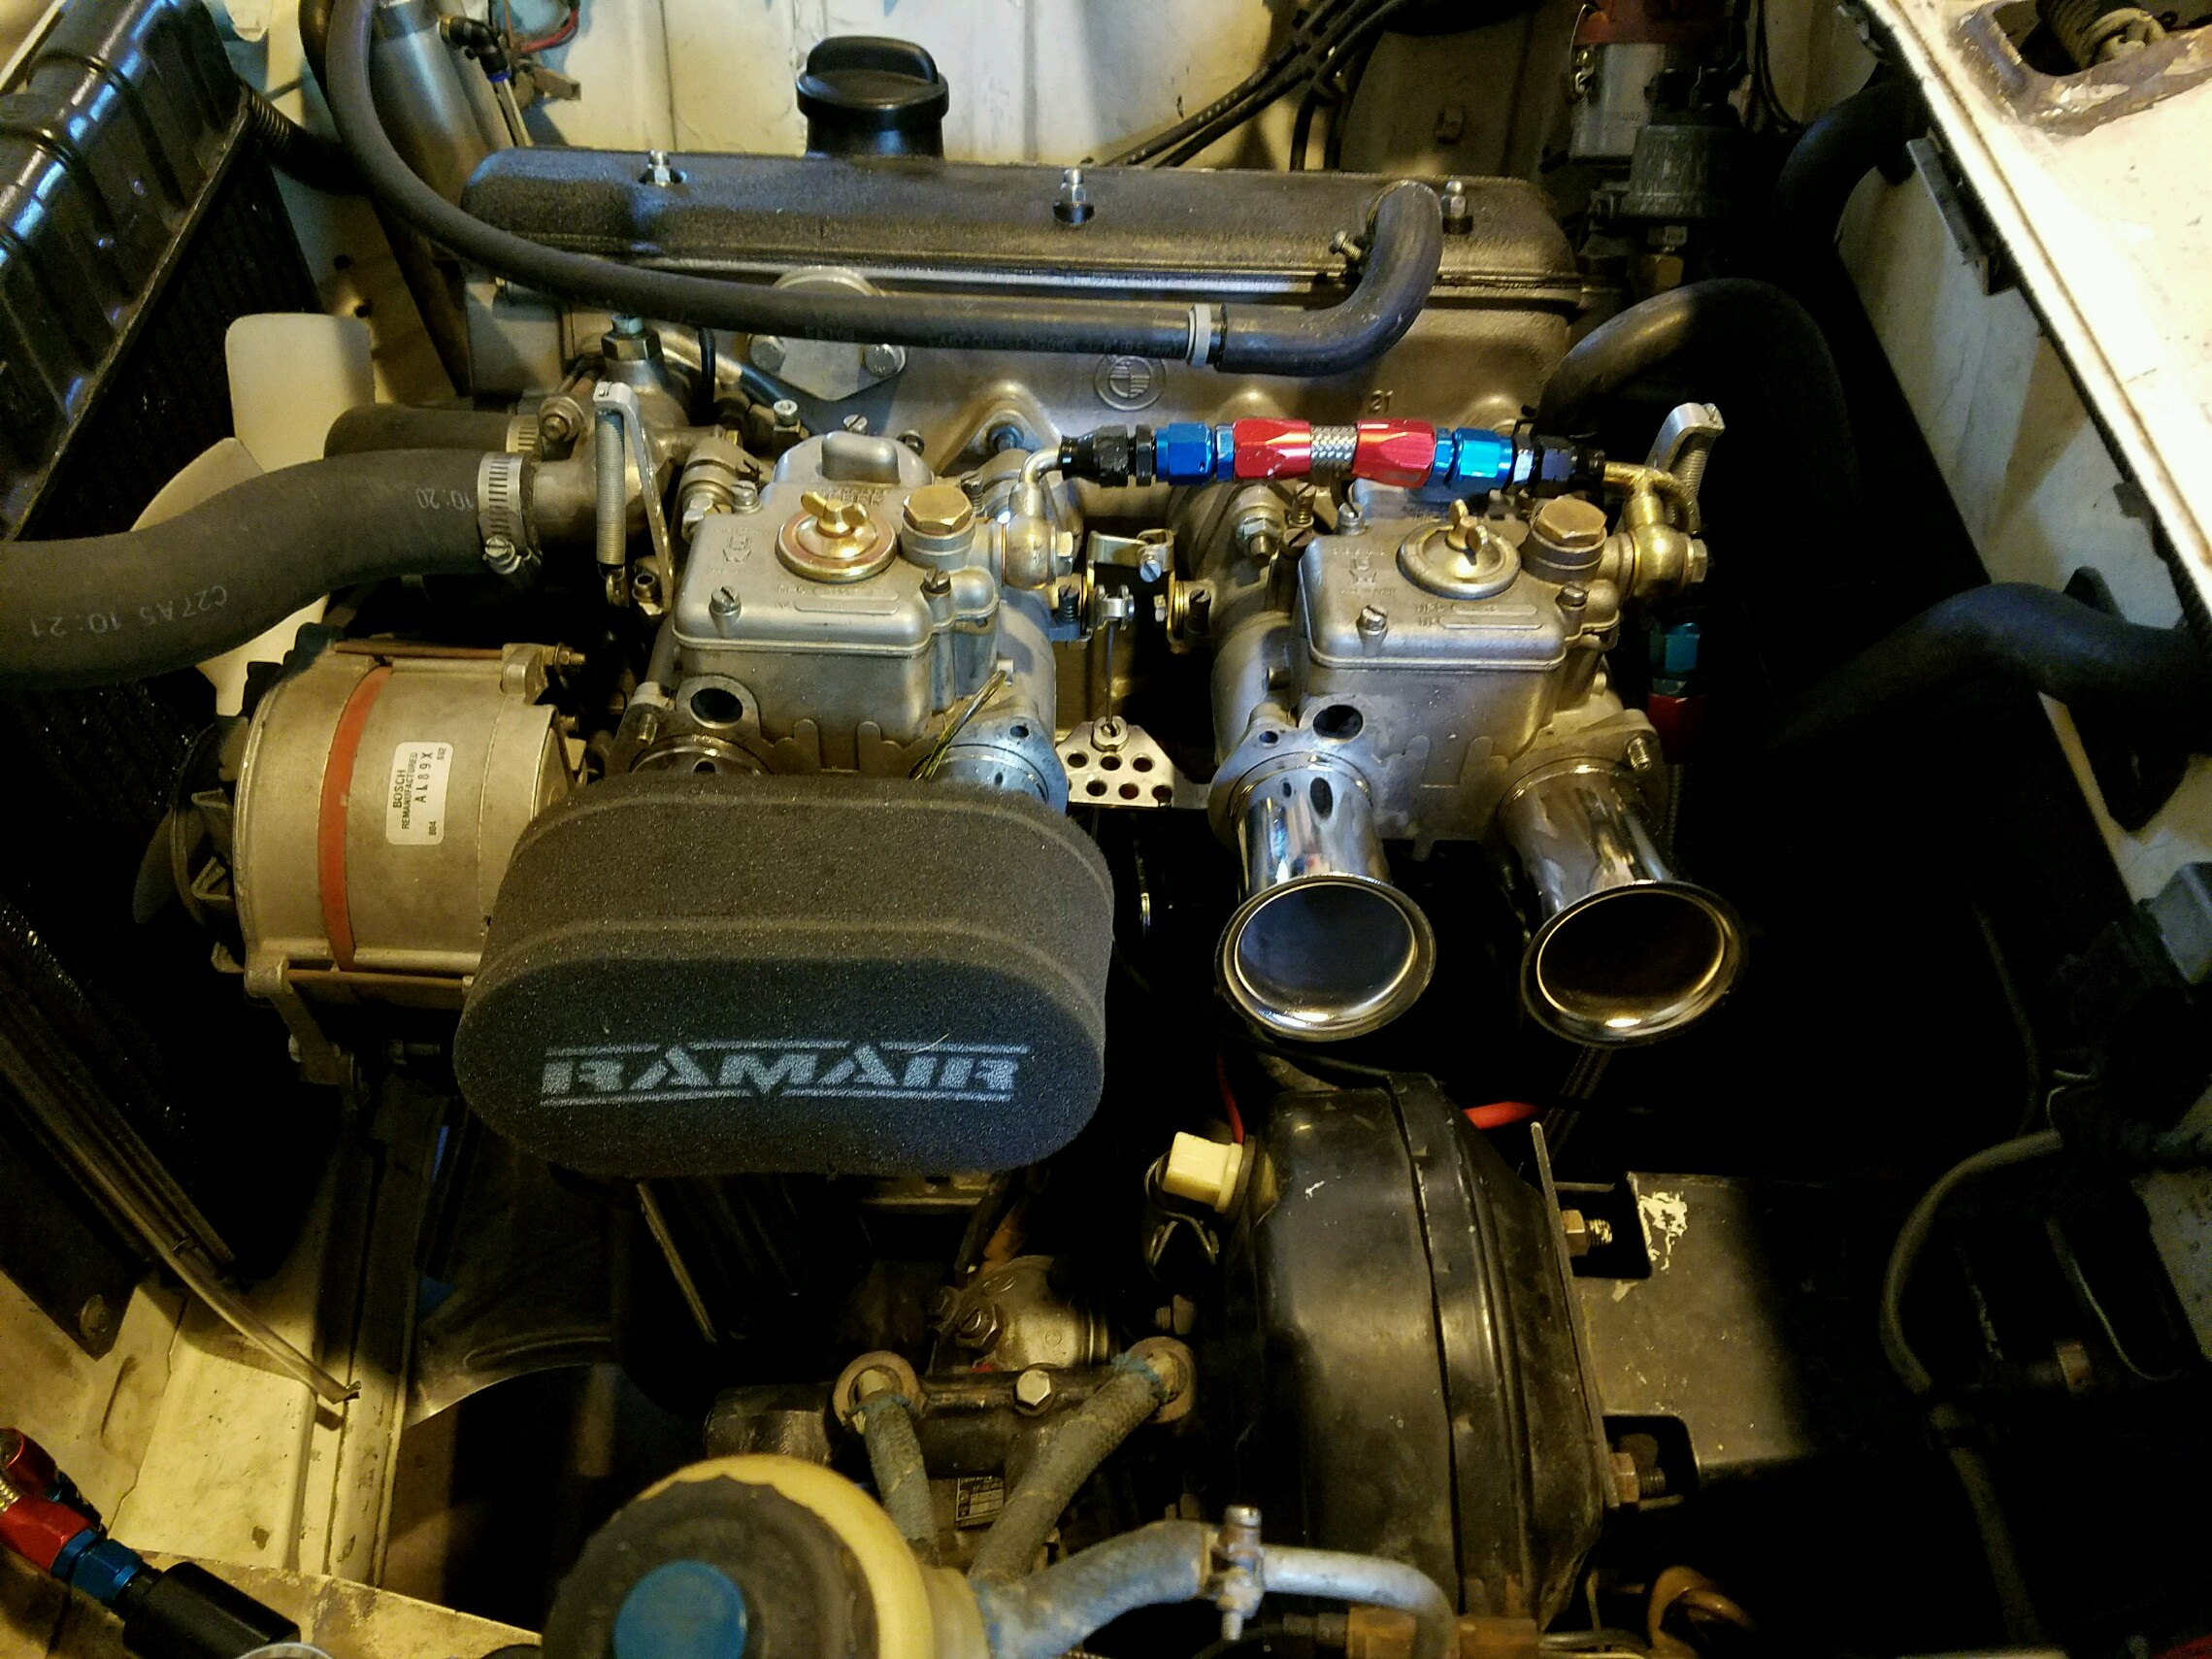 Pics) 40DCOEs with straight stacks and angled filters, stock booster ...